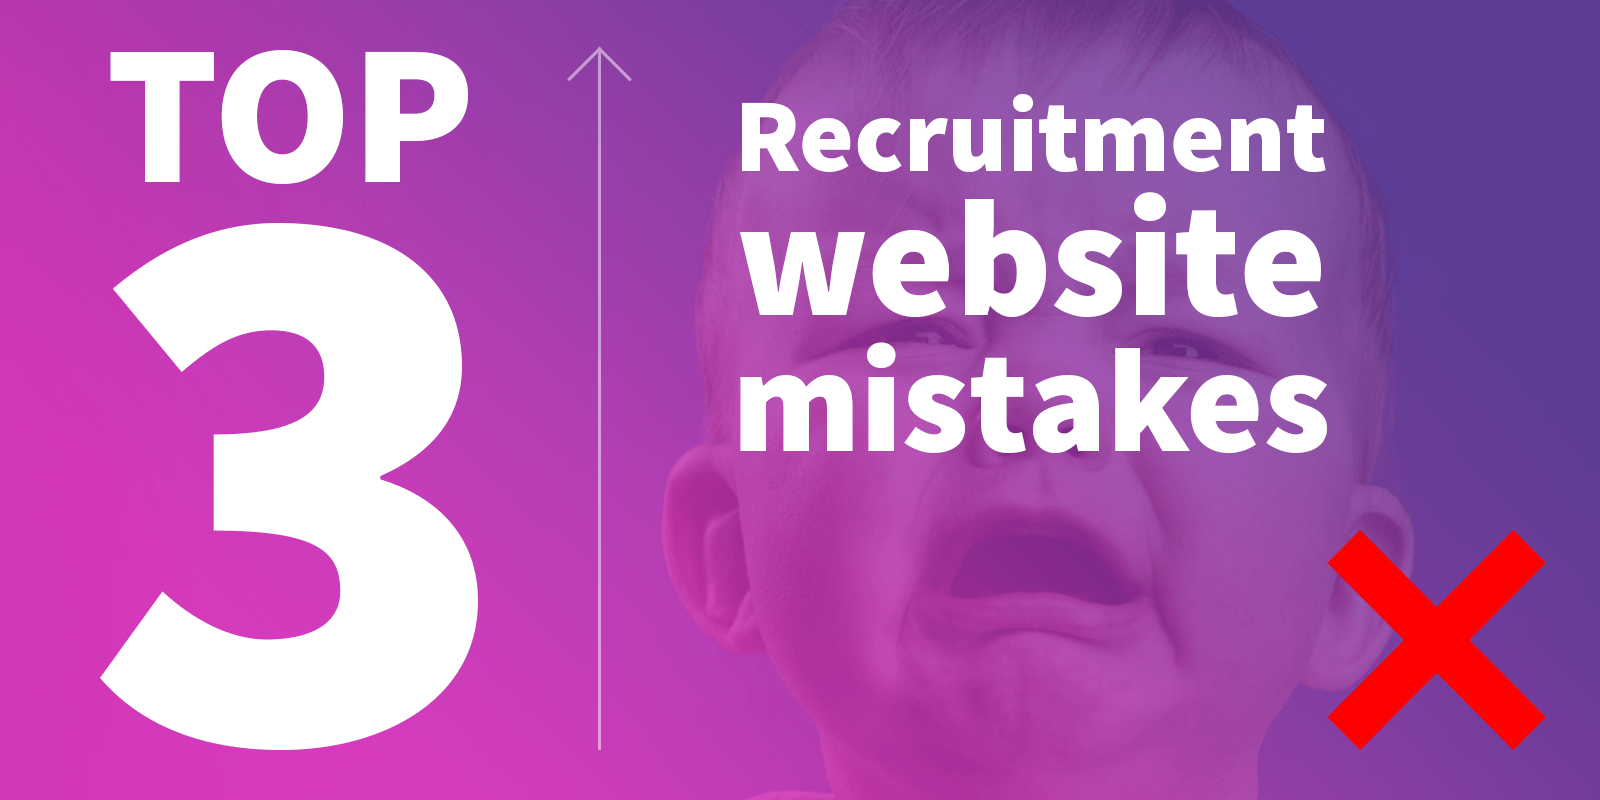 Top 3 Recruitment Website Mistakes